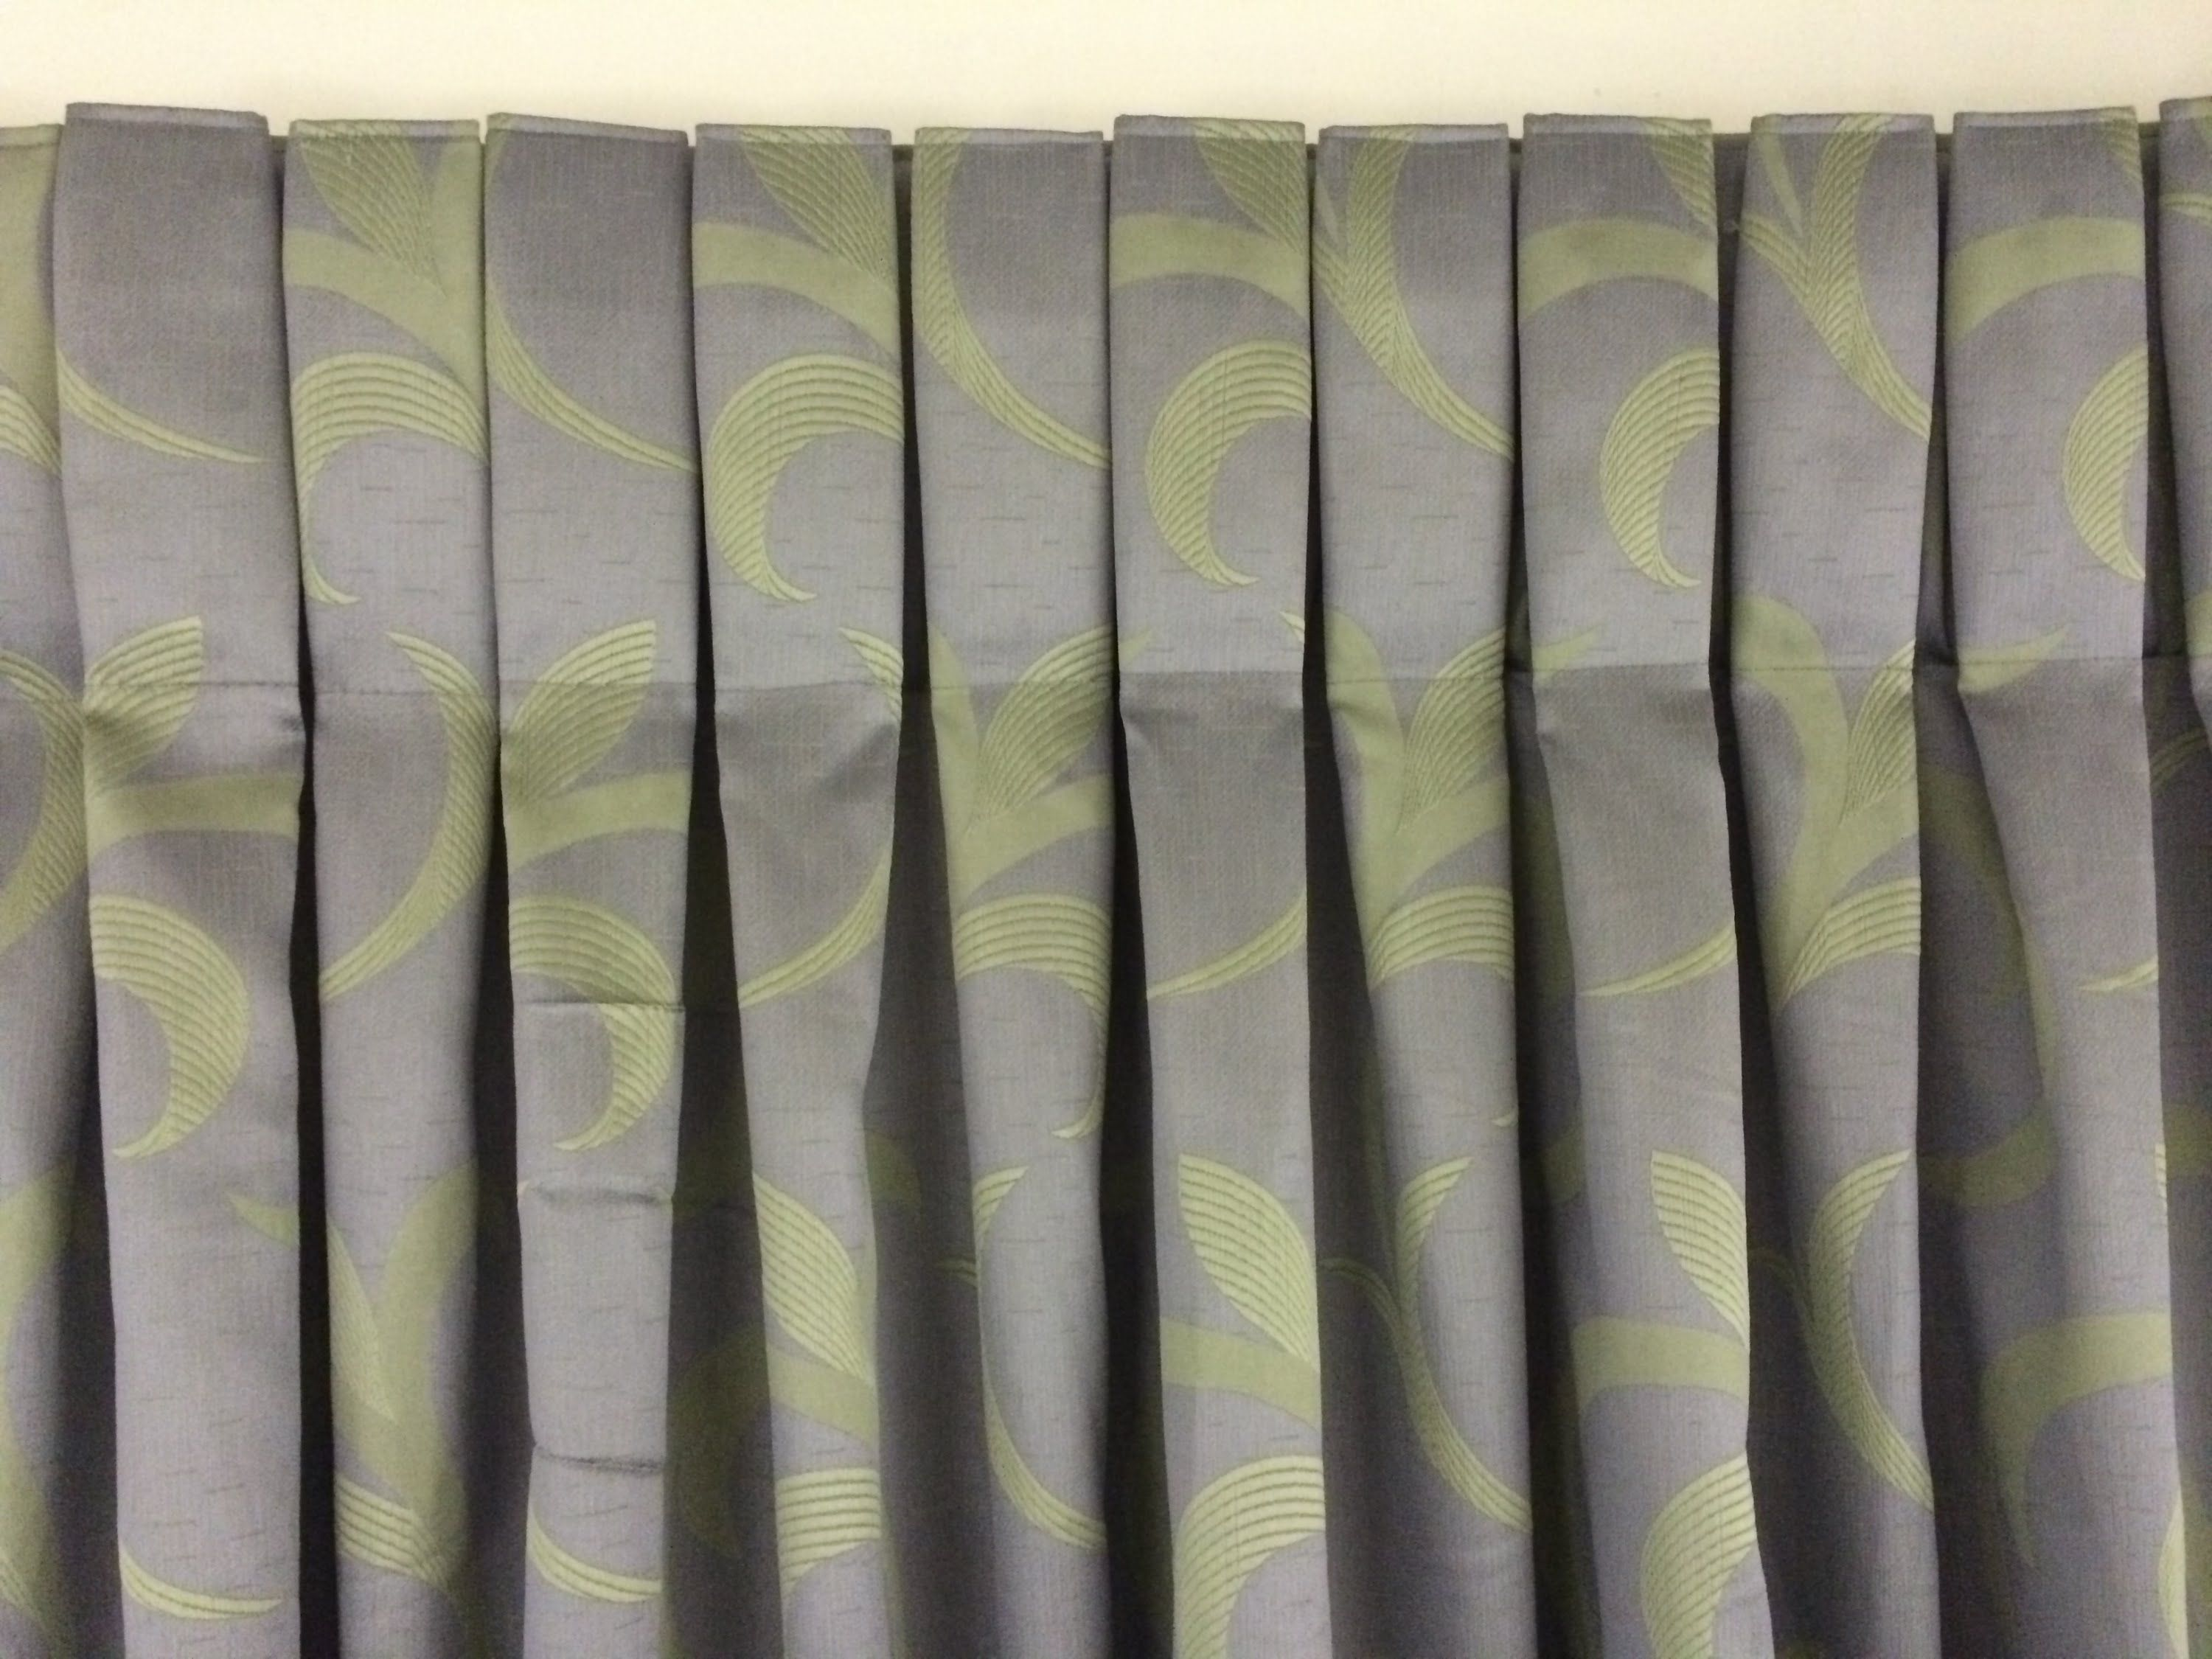 Make 10 different styles of curtains using 1 tape and 1 hook. New curtain system by Eezy Pleat allows you to make perfectly uniform curtains in a fraction of...